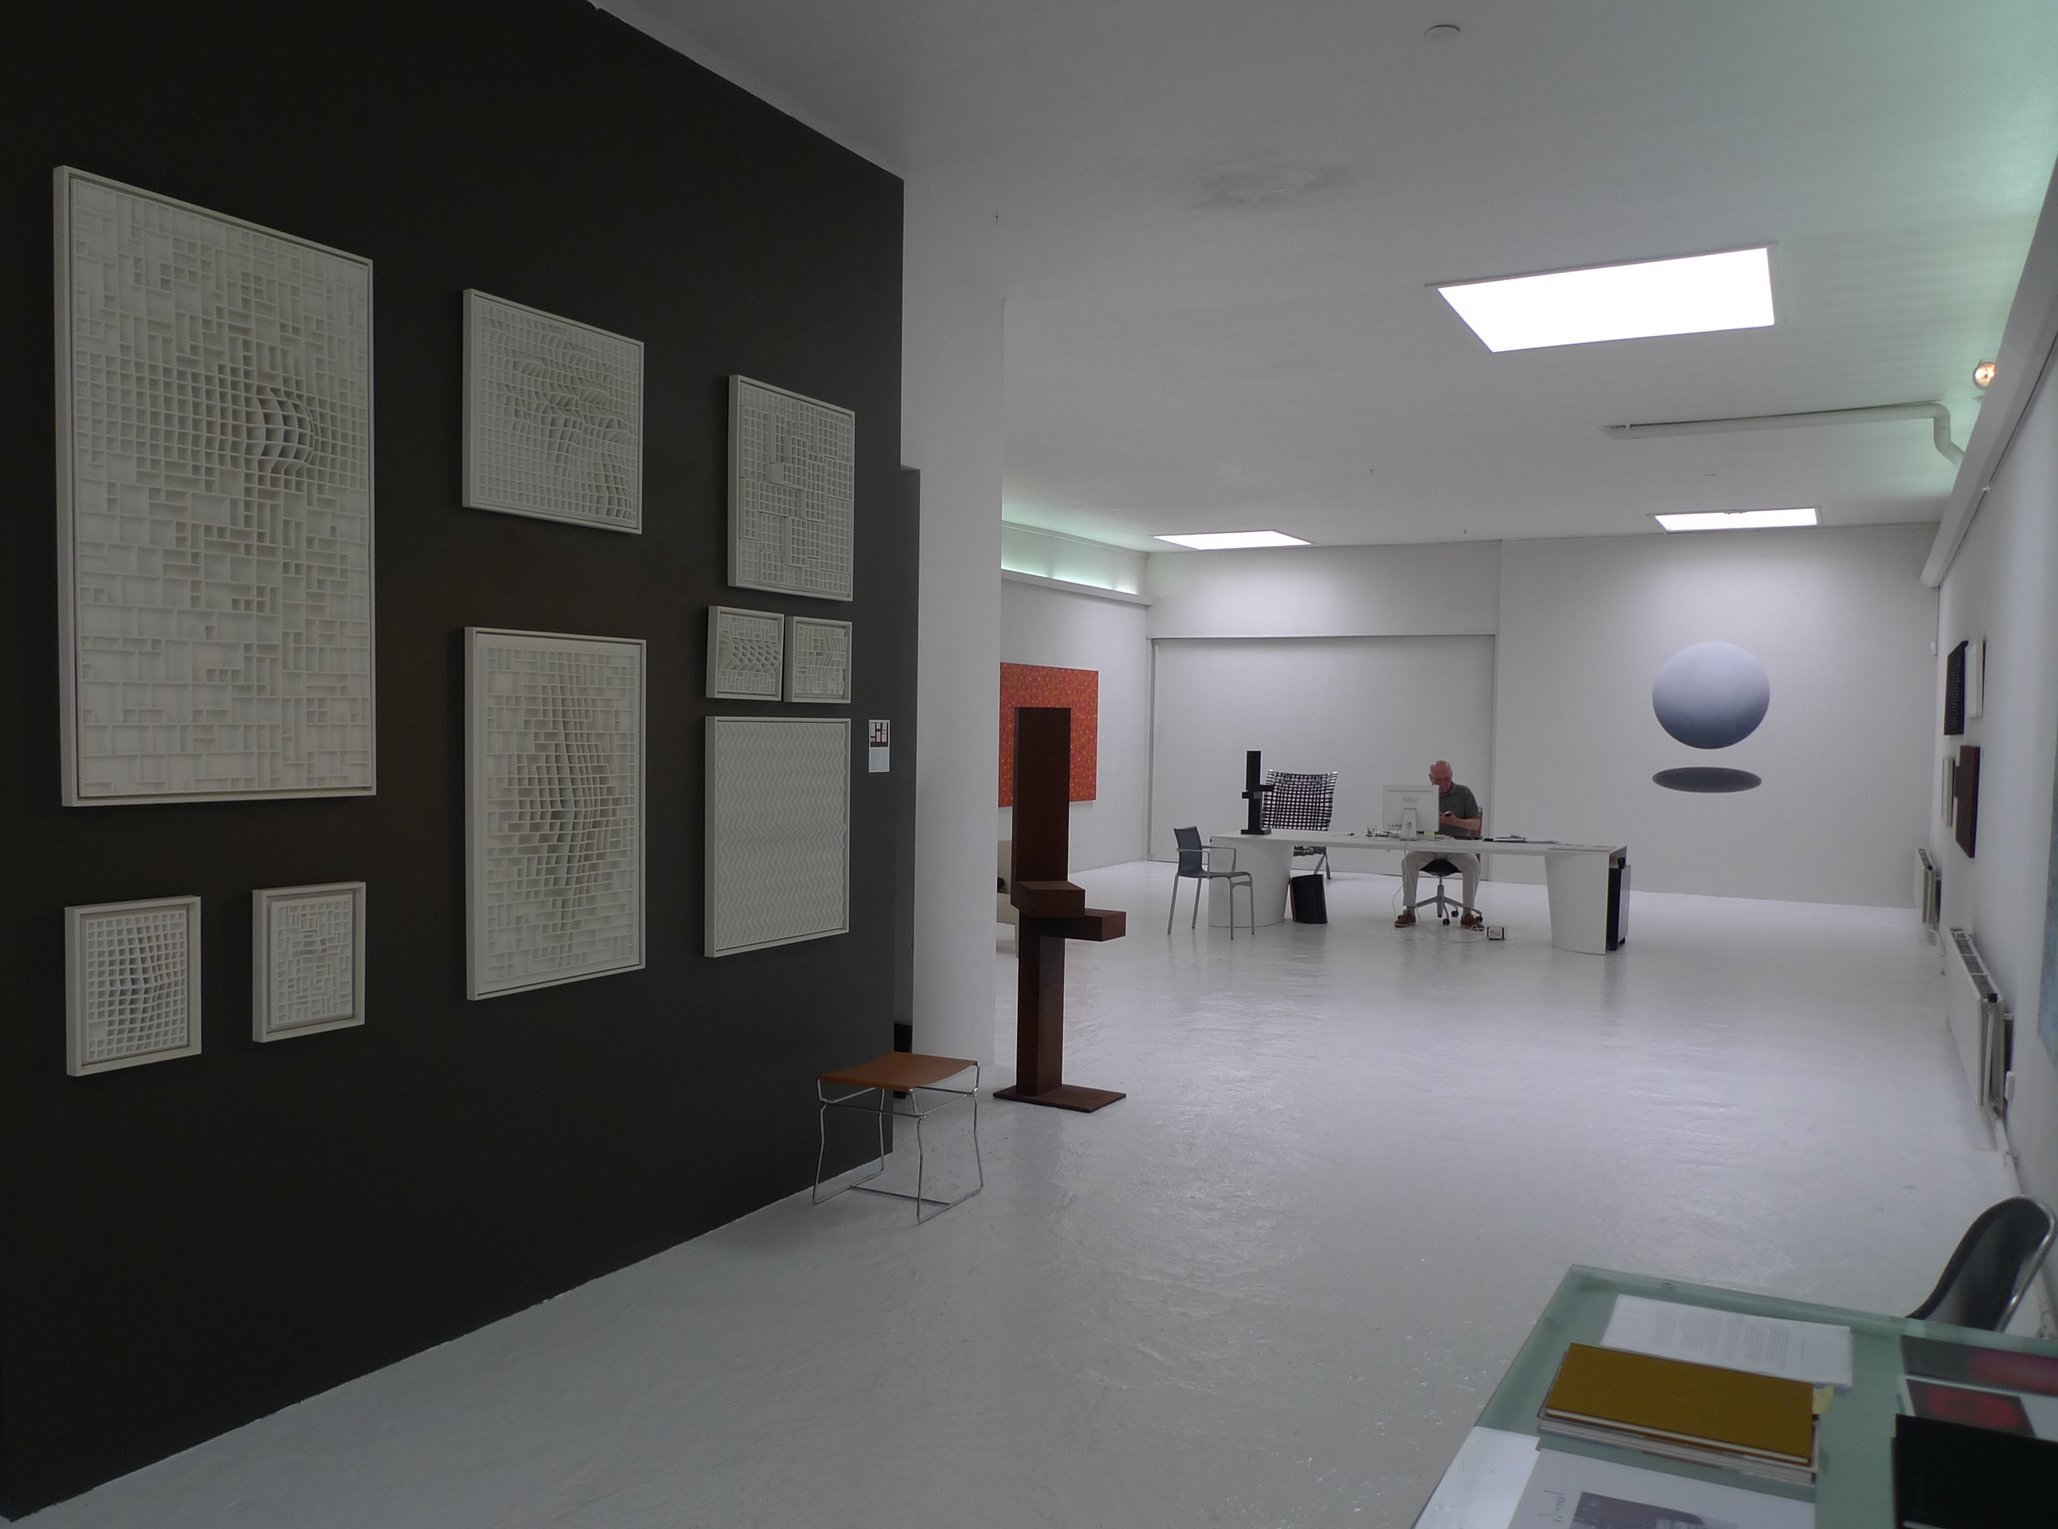 Seasons Galleries_3.jpg